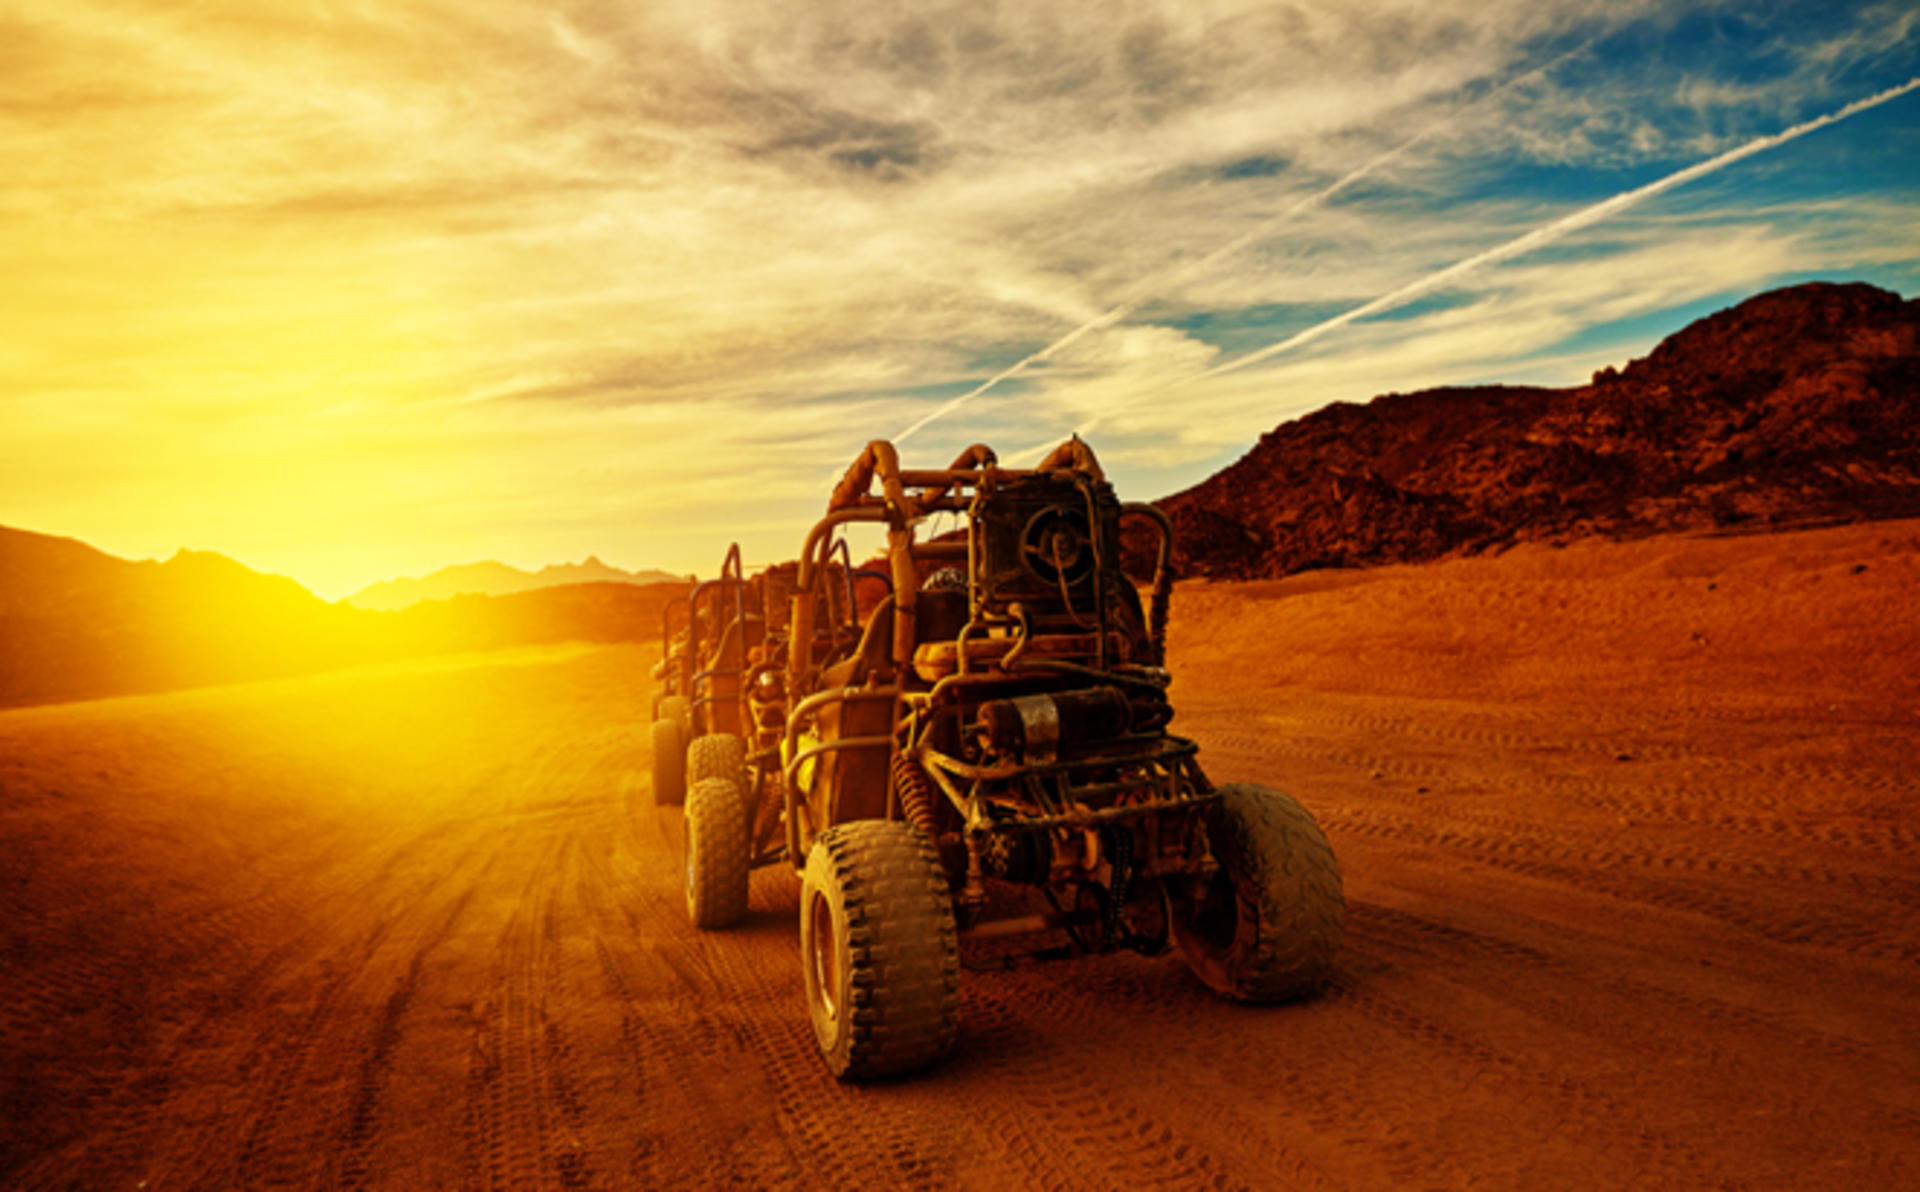 BurjRafalHotelKempinski_Quad_Bike_Desert_Adventure_at_the_Red_Sand